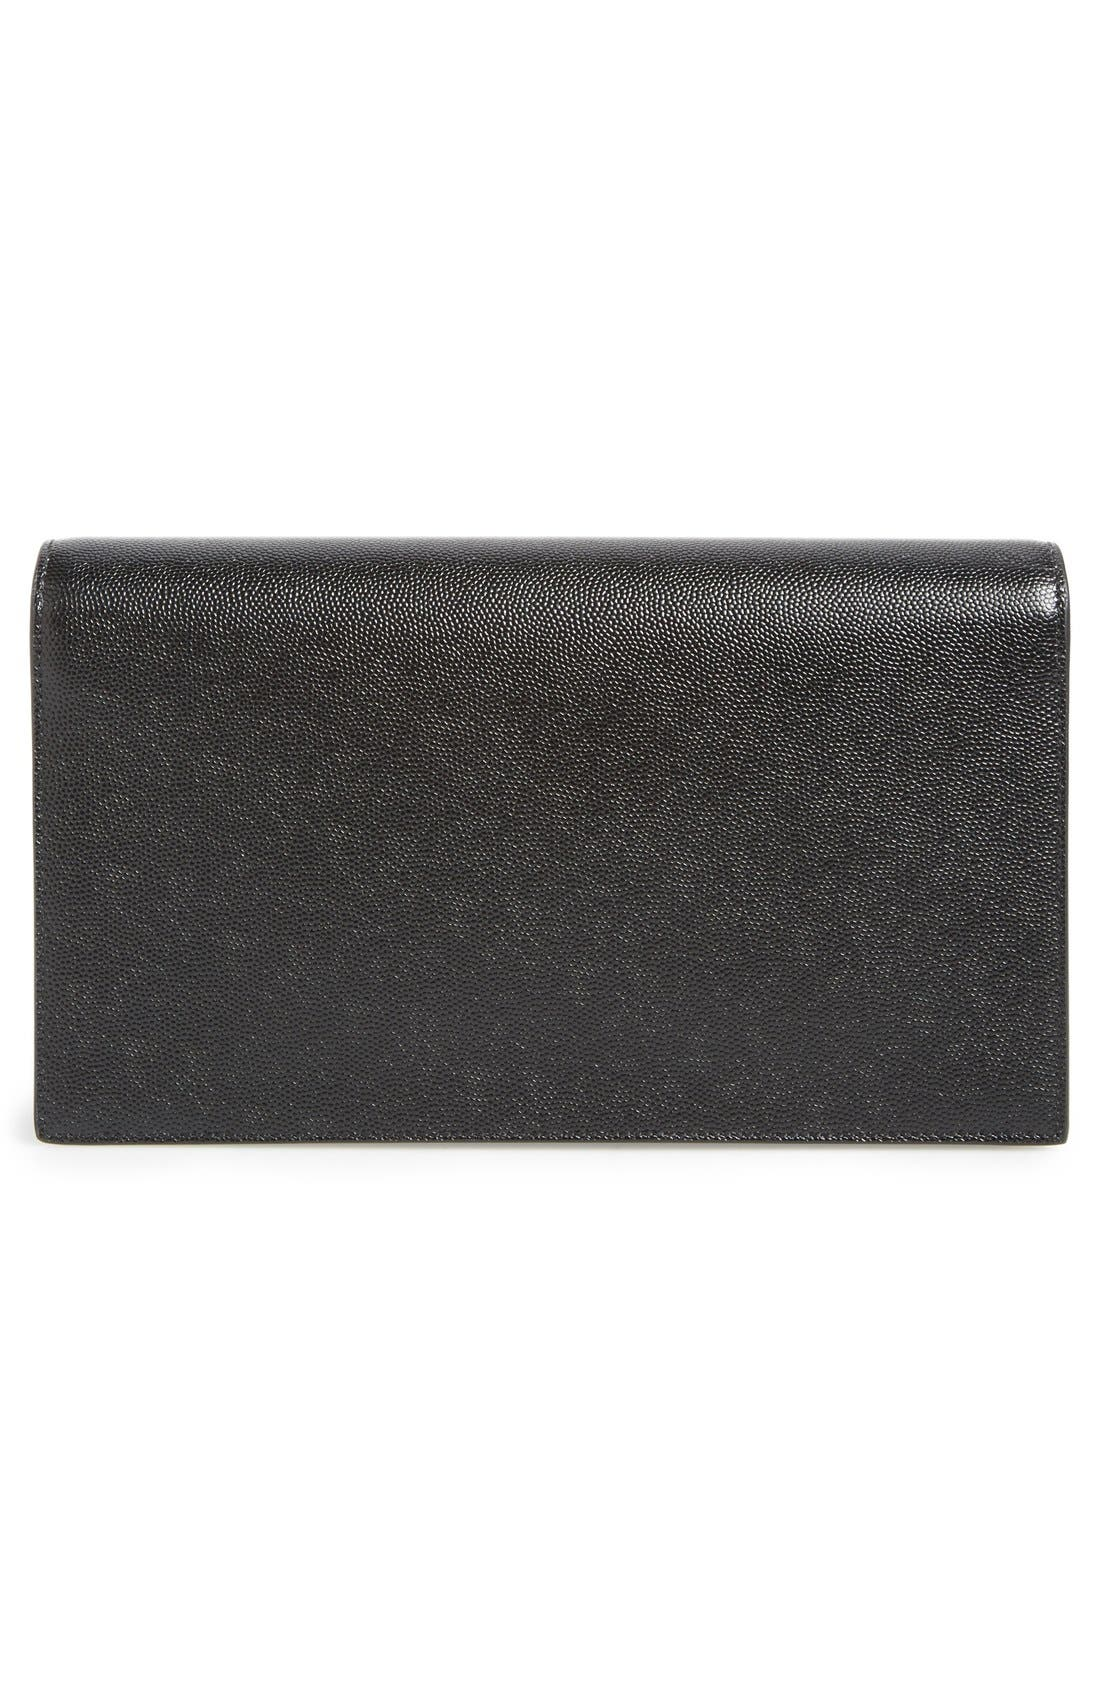 SAINT LAURENT, 'Monogram' Leather Clutch, Alternate thumbnail 5, color, NOIR